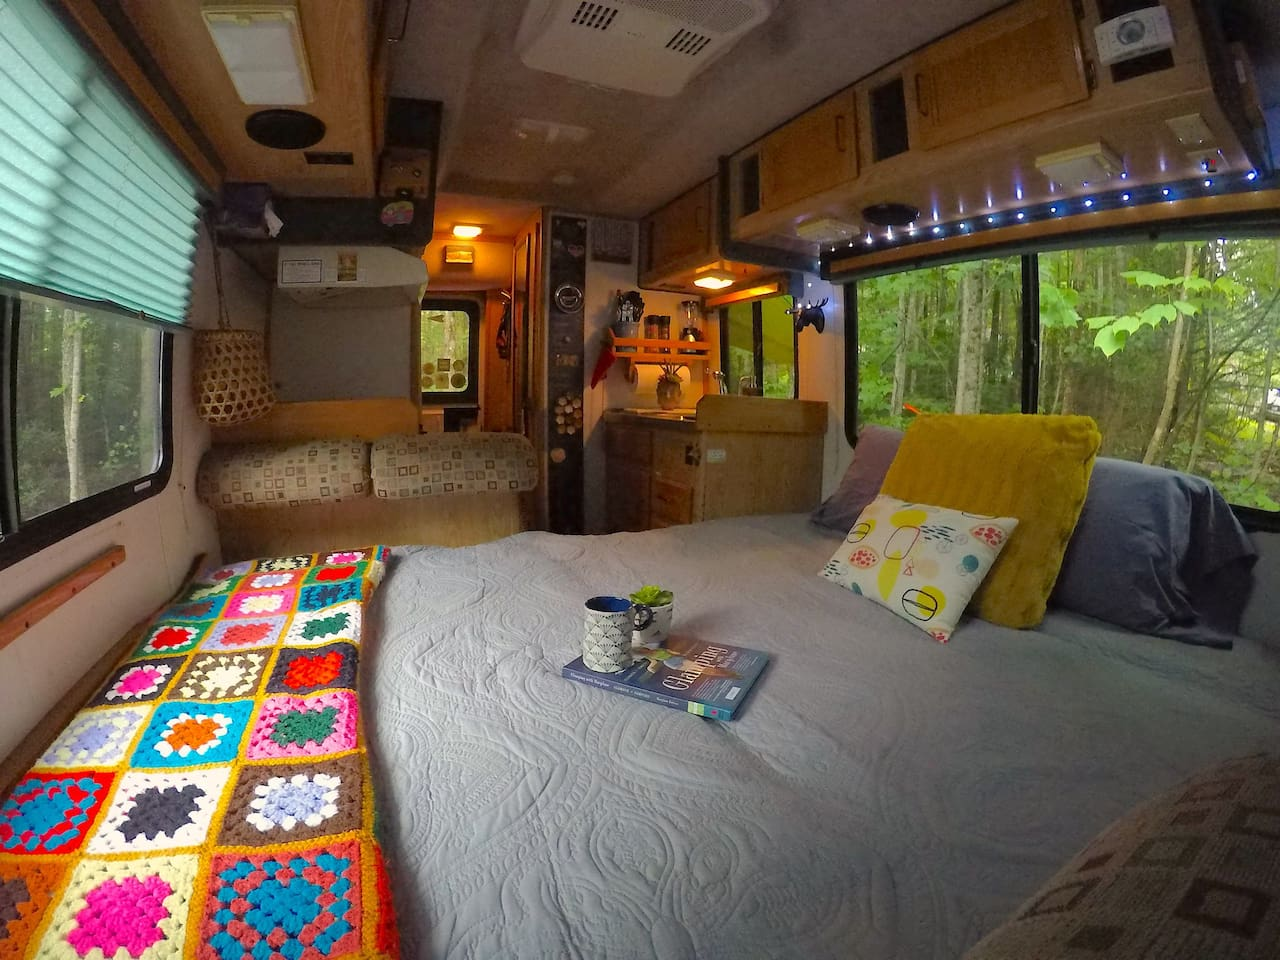 Overview from front to back with King Bed layout. (To capture a small space we used a GoPro wide angle lens on some, but not all,  of the photos - space may appear a little larger than actual in those pics, but they give the best comprehensive views)